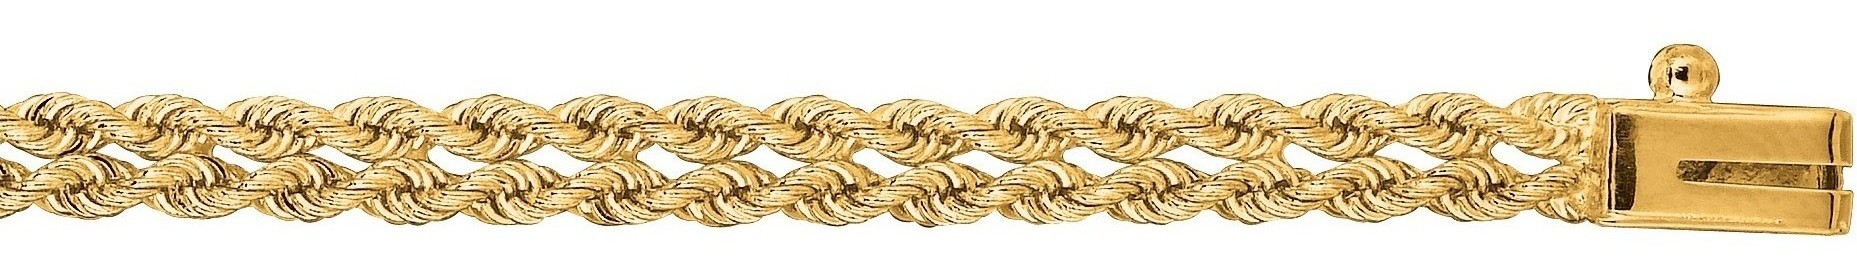 "7"" 14K Yellow Gold 4.0mm (1/6"") Polished Diamond Cut Multi Line Rope Chain w/ Box Catch Clasp"